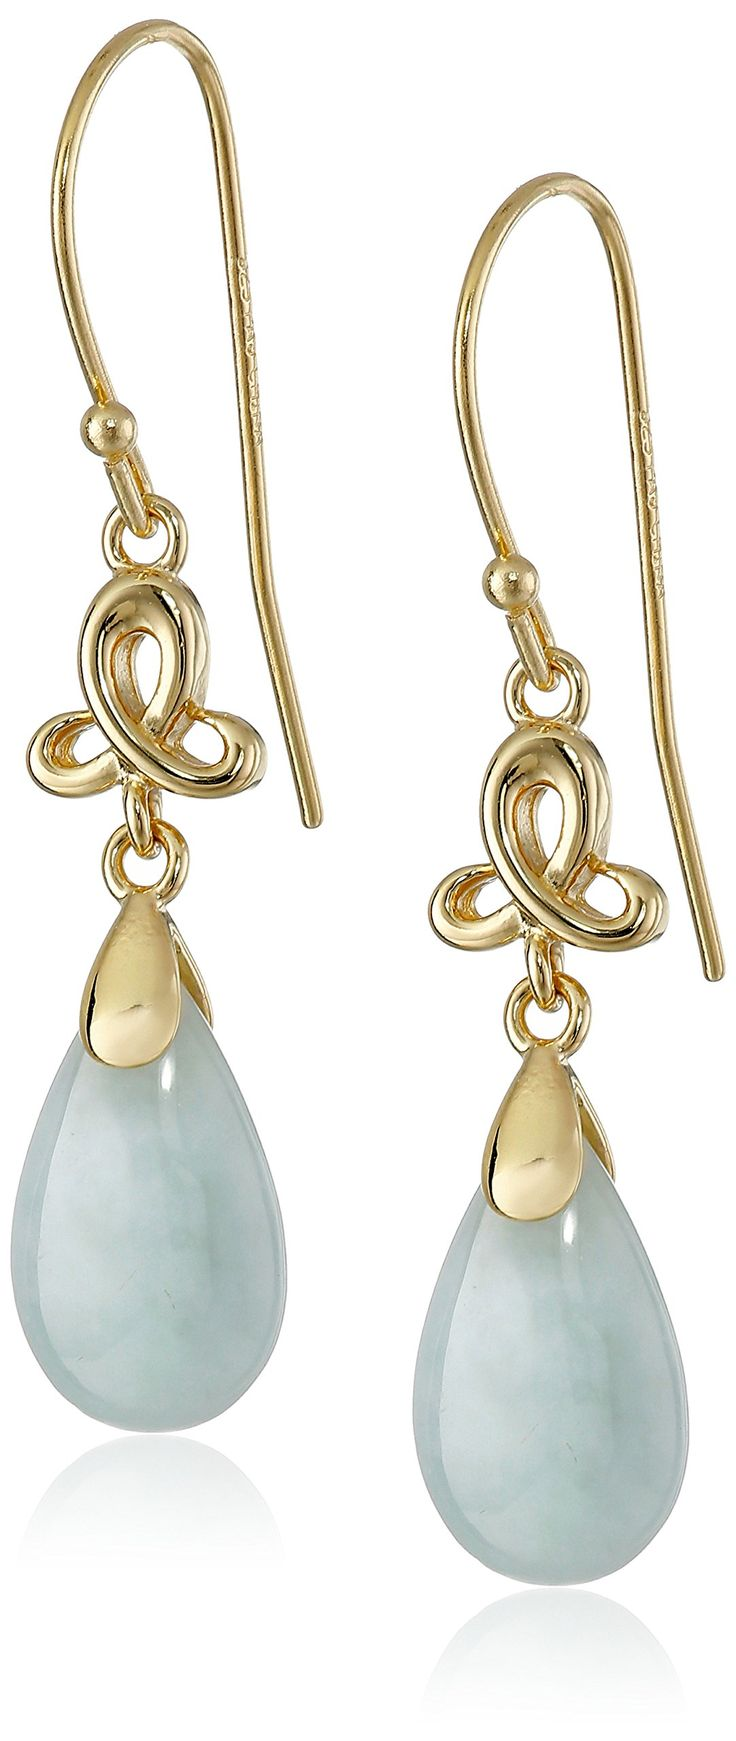 18k Yellow Gold-Plated Sterling Silver Green Jade Pear-Shape Dangle Earrings: